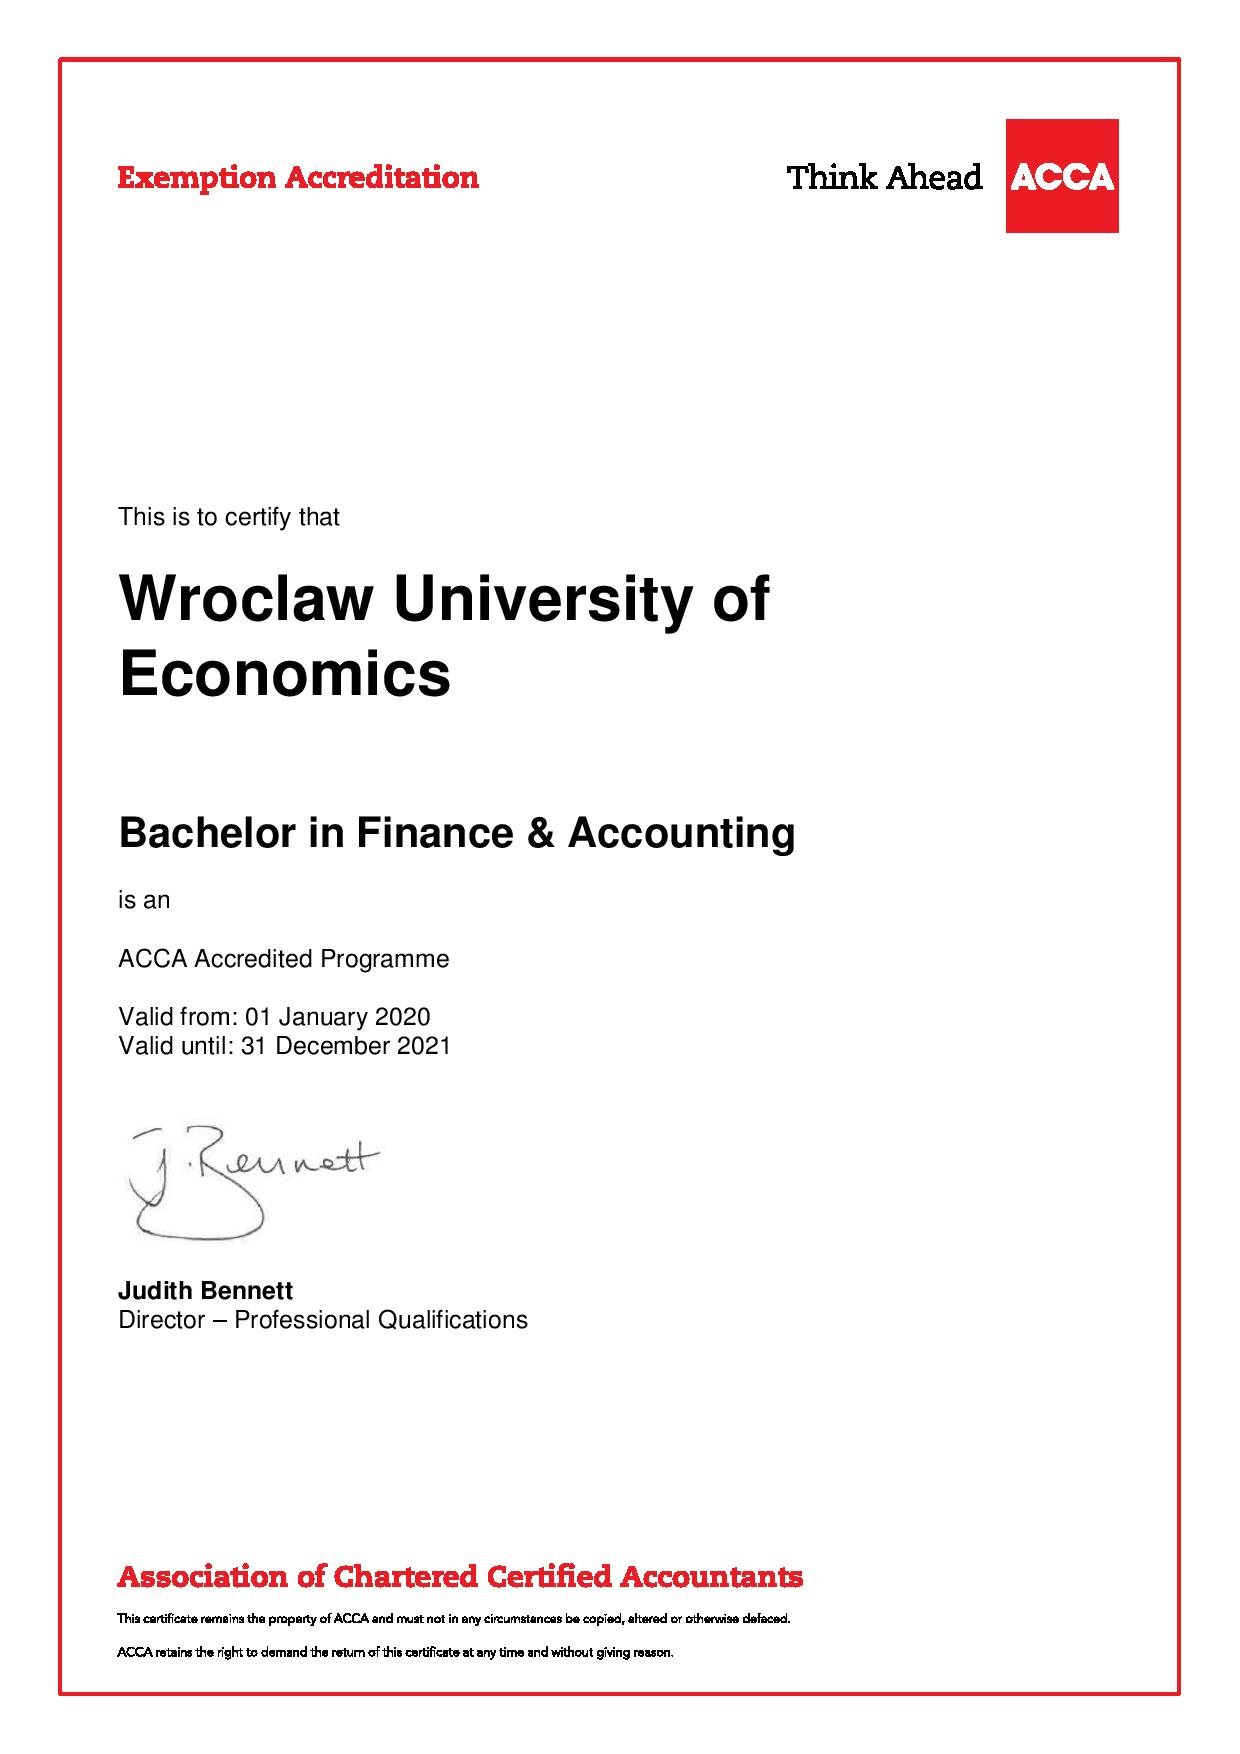 bachelor_in_finance_accounting___exemptions_certificate_page_001